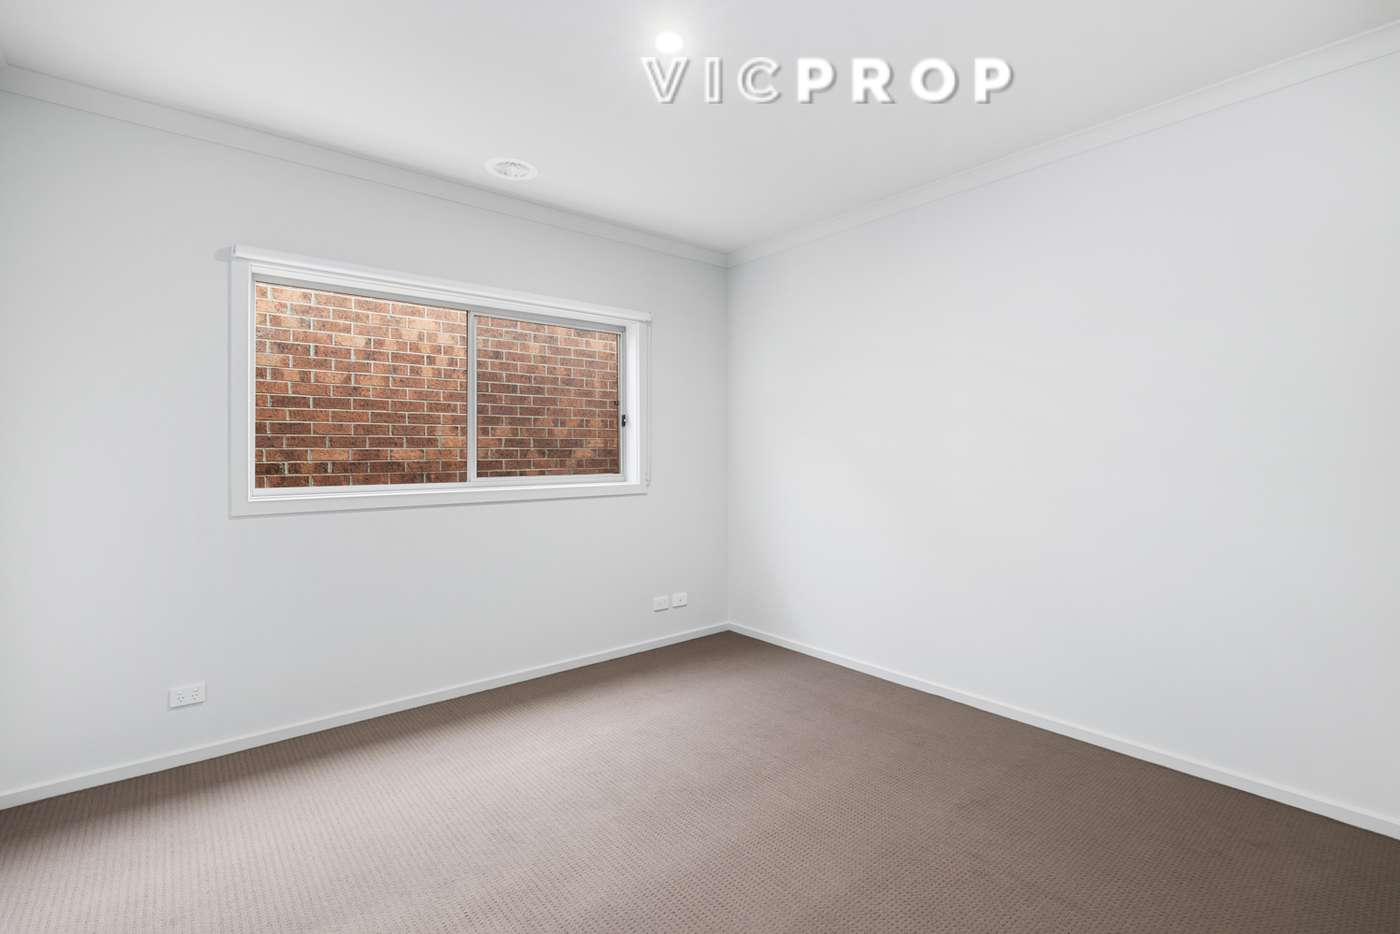 Seventh view of Homely house listing, 8 Gunnersbury Road, Wyndham Vale VIC 3024